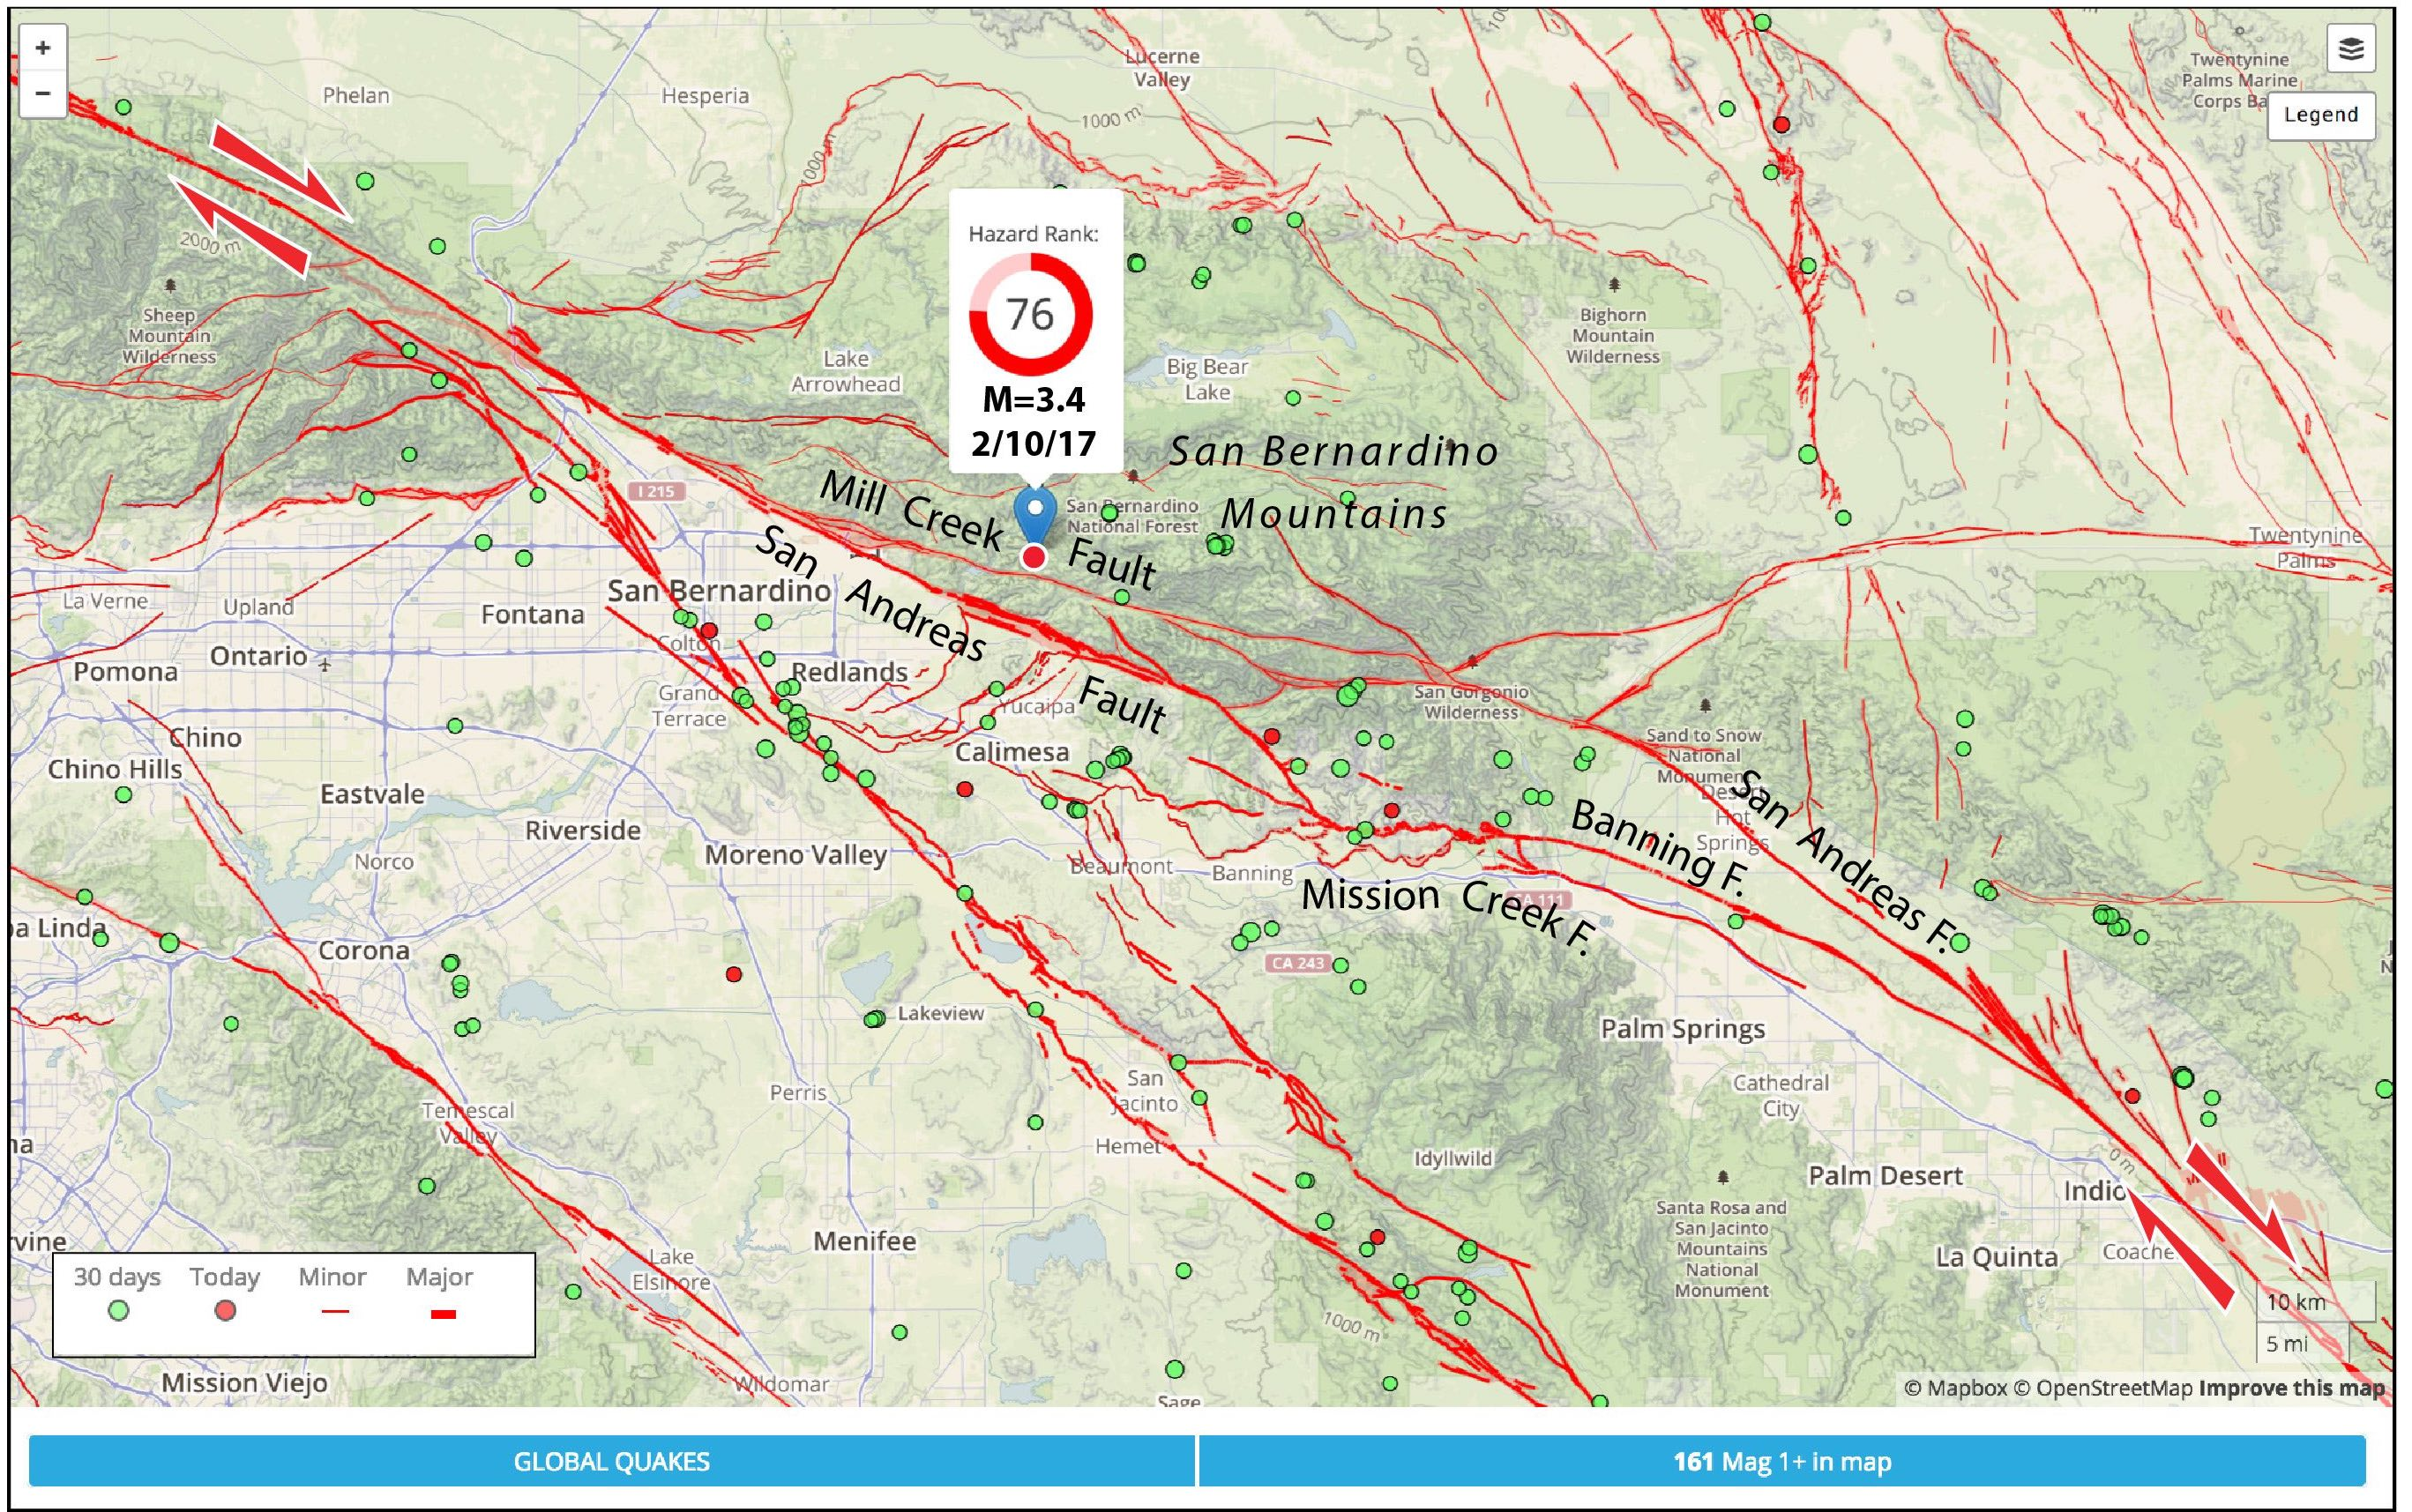 San Andreas Fault earthquake wakes San Bernardino and ... on new madrid fault map, calaveras fault line map, california fault map, andreas fault line map, san jacinto fault zone, hayward fault zone, newport-inglewood fault zone map, rose canyon fault map, mount shasta, salton sea map, san gorgonio wilderness map, north america fault map, hayward fault map, garlock fault map, balcones fault line map, west coast fault line map, whittier fault map, 1906 san francisco earthquake, silicon valley, bay area fault map, los angeles map, city of san antonio map, big sur map, southern california faults, earthquakes in california, calaveras fault, arizona fault map, garlock fault, riverside san bernardino county cities map, carrizo plain, mojave desert,